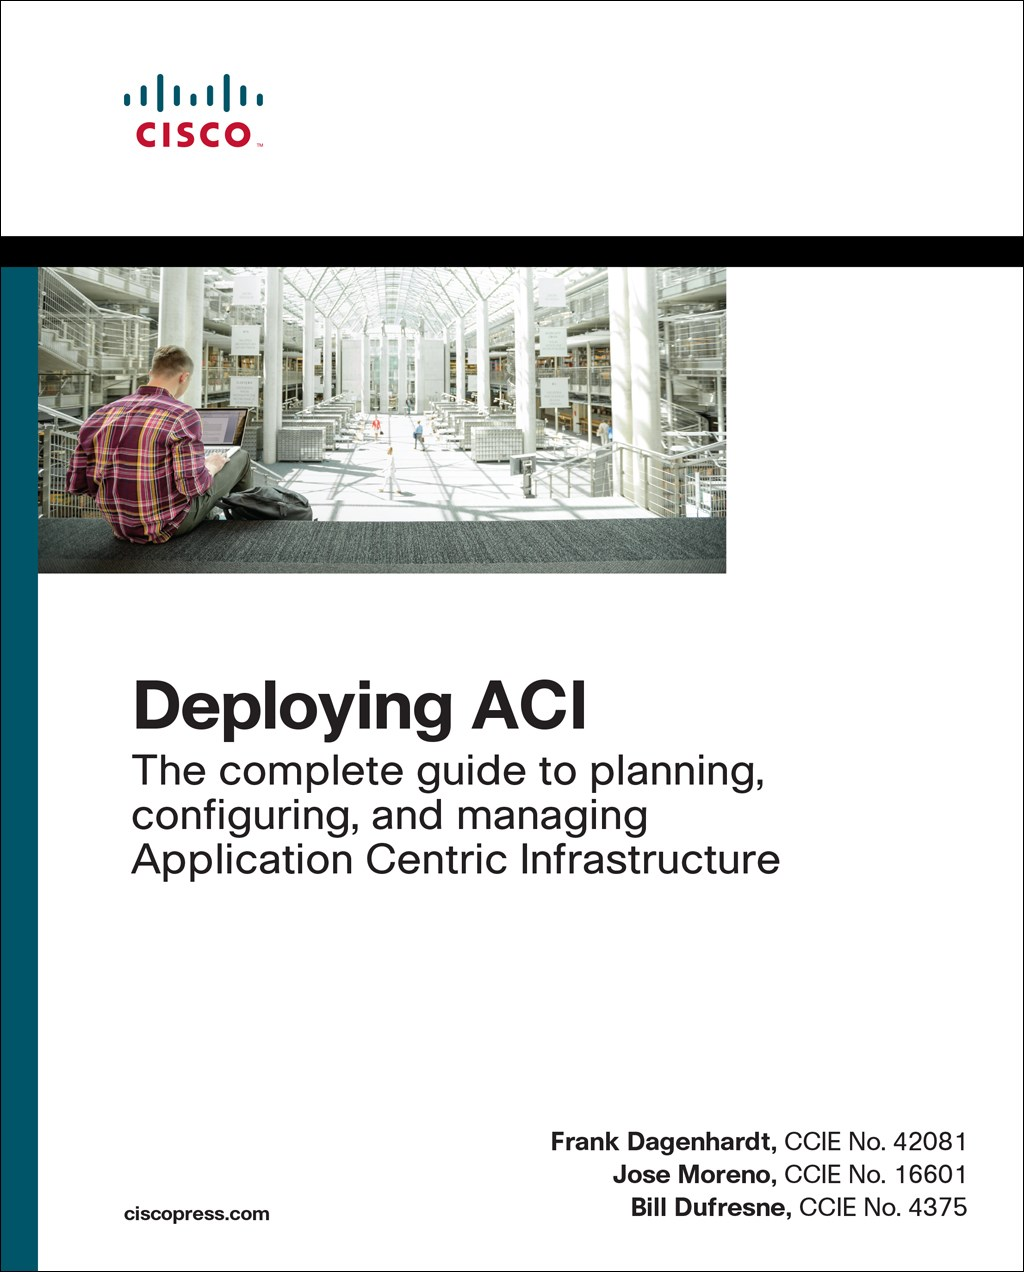 Deploying ACI: The complete guide to planning, configuring, and managing Application Centric Infrastructure